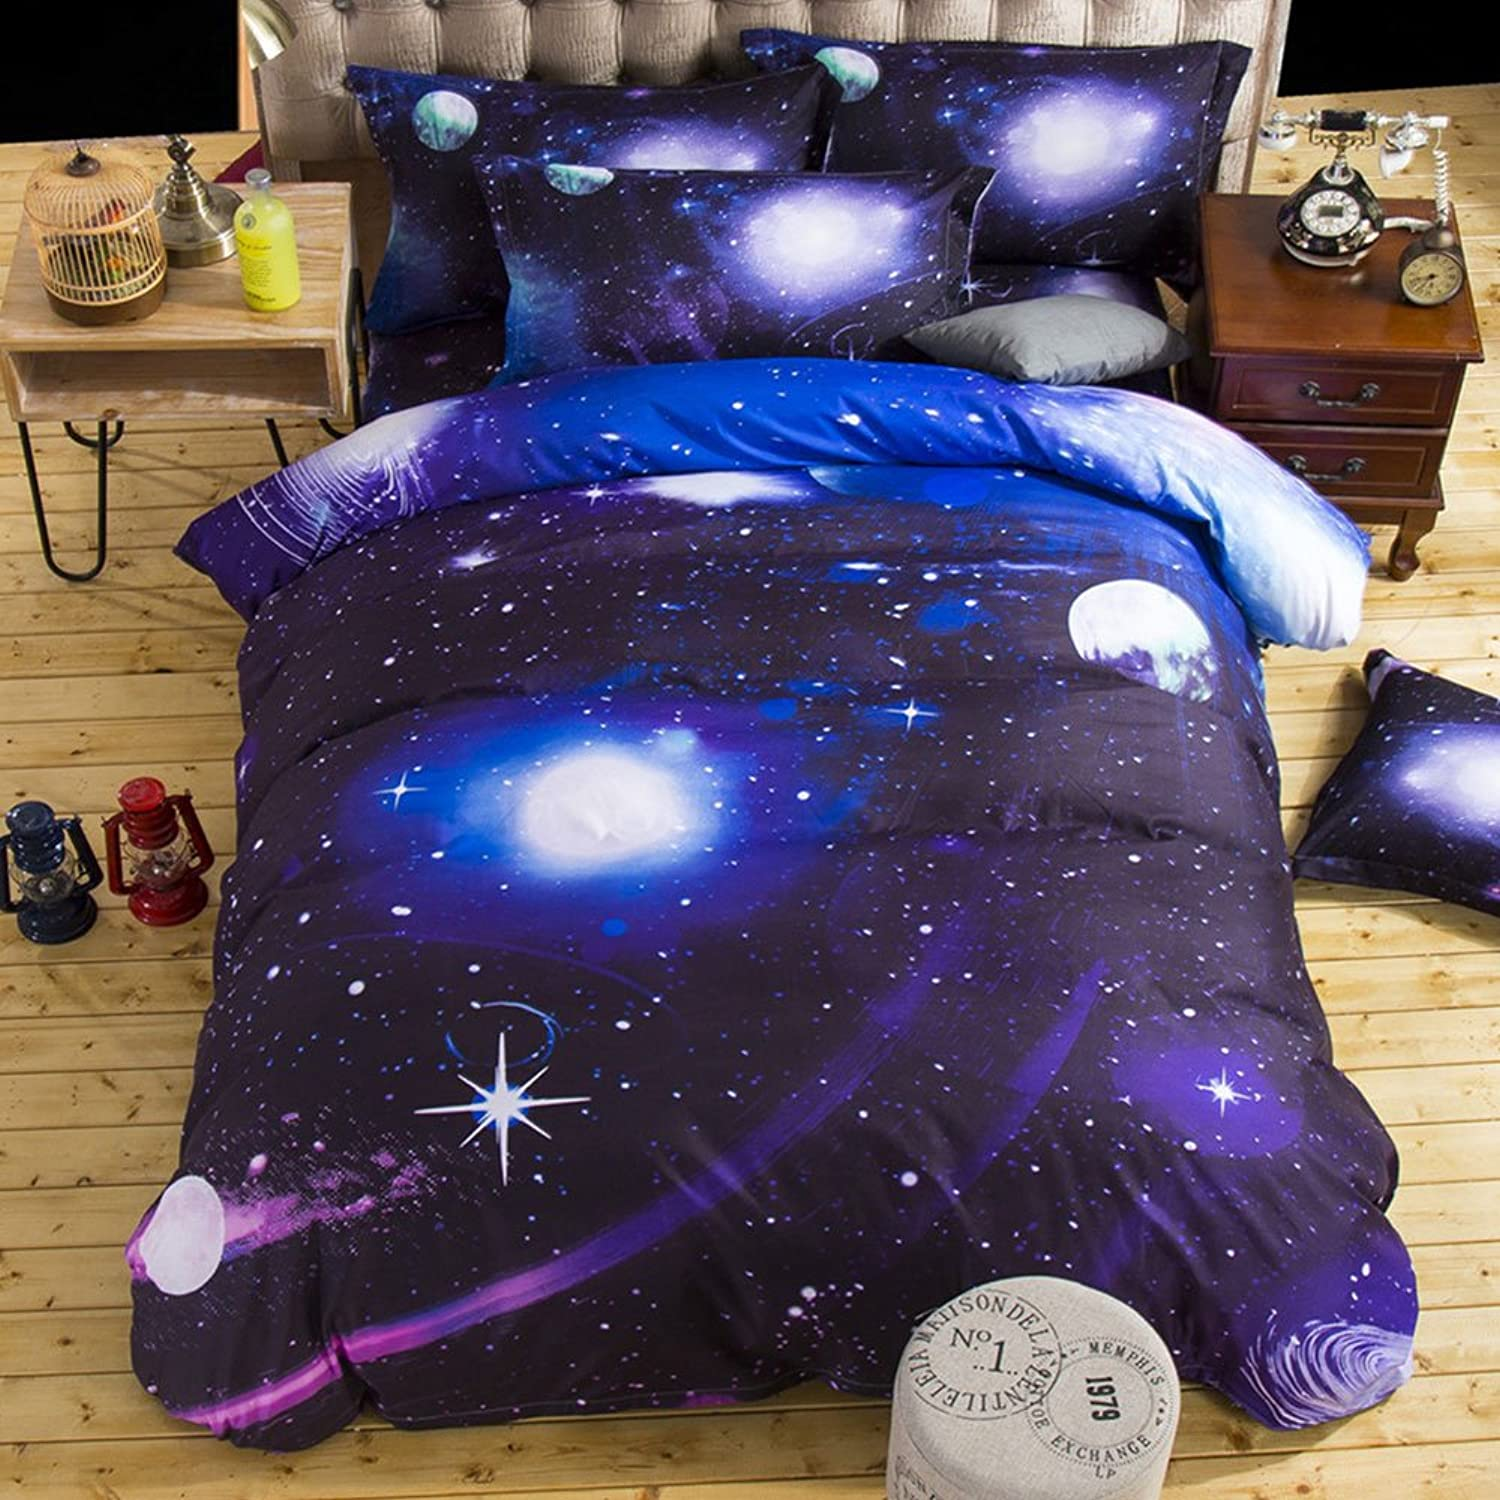 0fcc6438086 Lovingin Galaxy Bedding Set Oil Print Duvet Cover Set Kids Bedding for Boys  and Girls Bedding (Purple bluee), 2Piece Bed Set, Duvet Cover and 1 Pillow  Cases ...